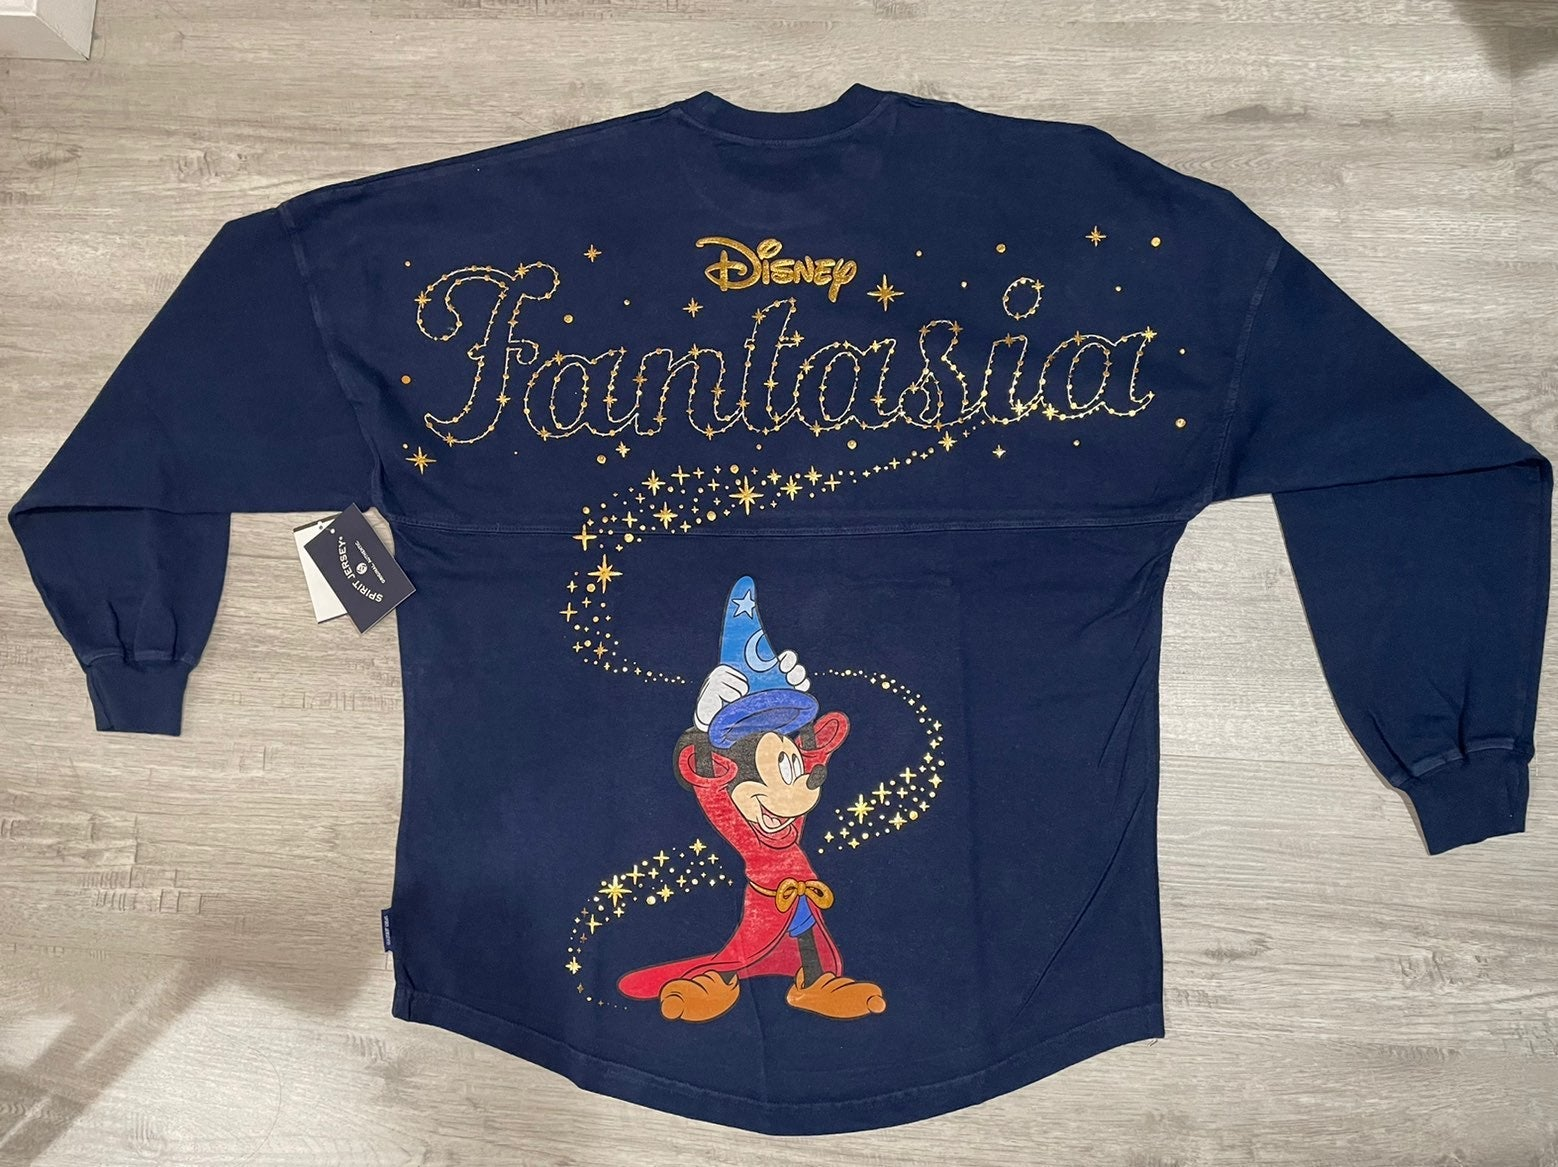 Disney Limited Fantasia Spirit Jersey (L